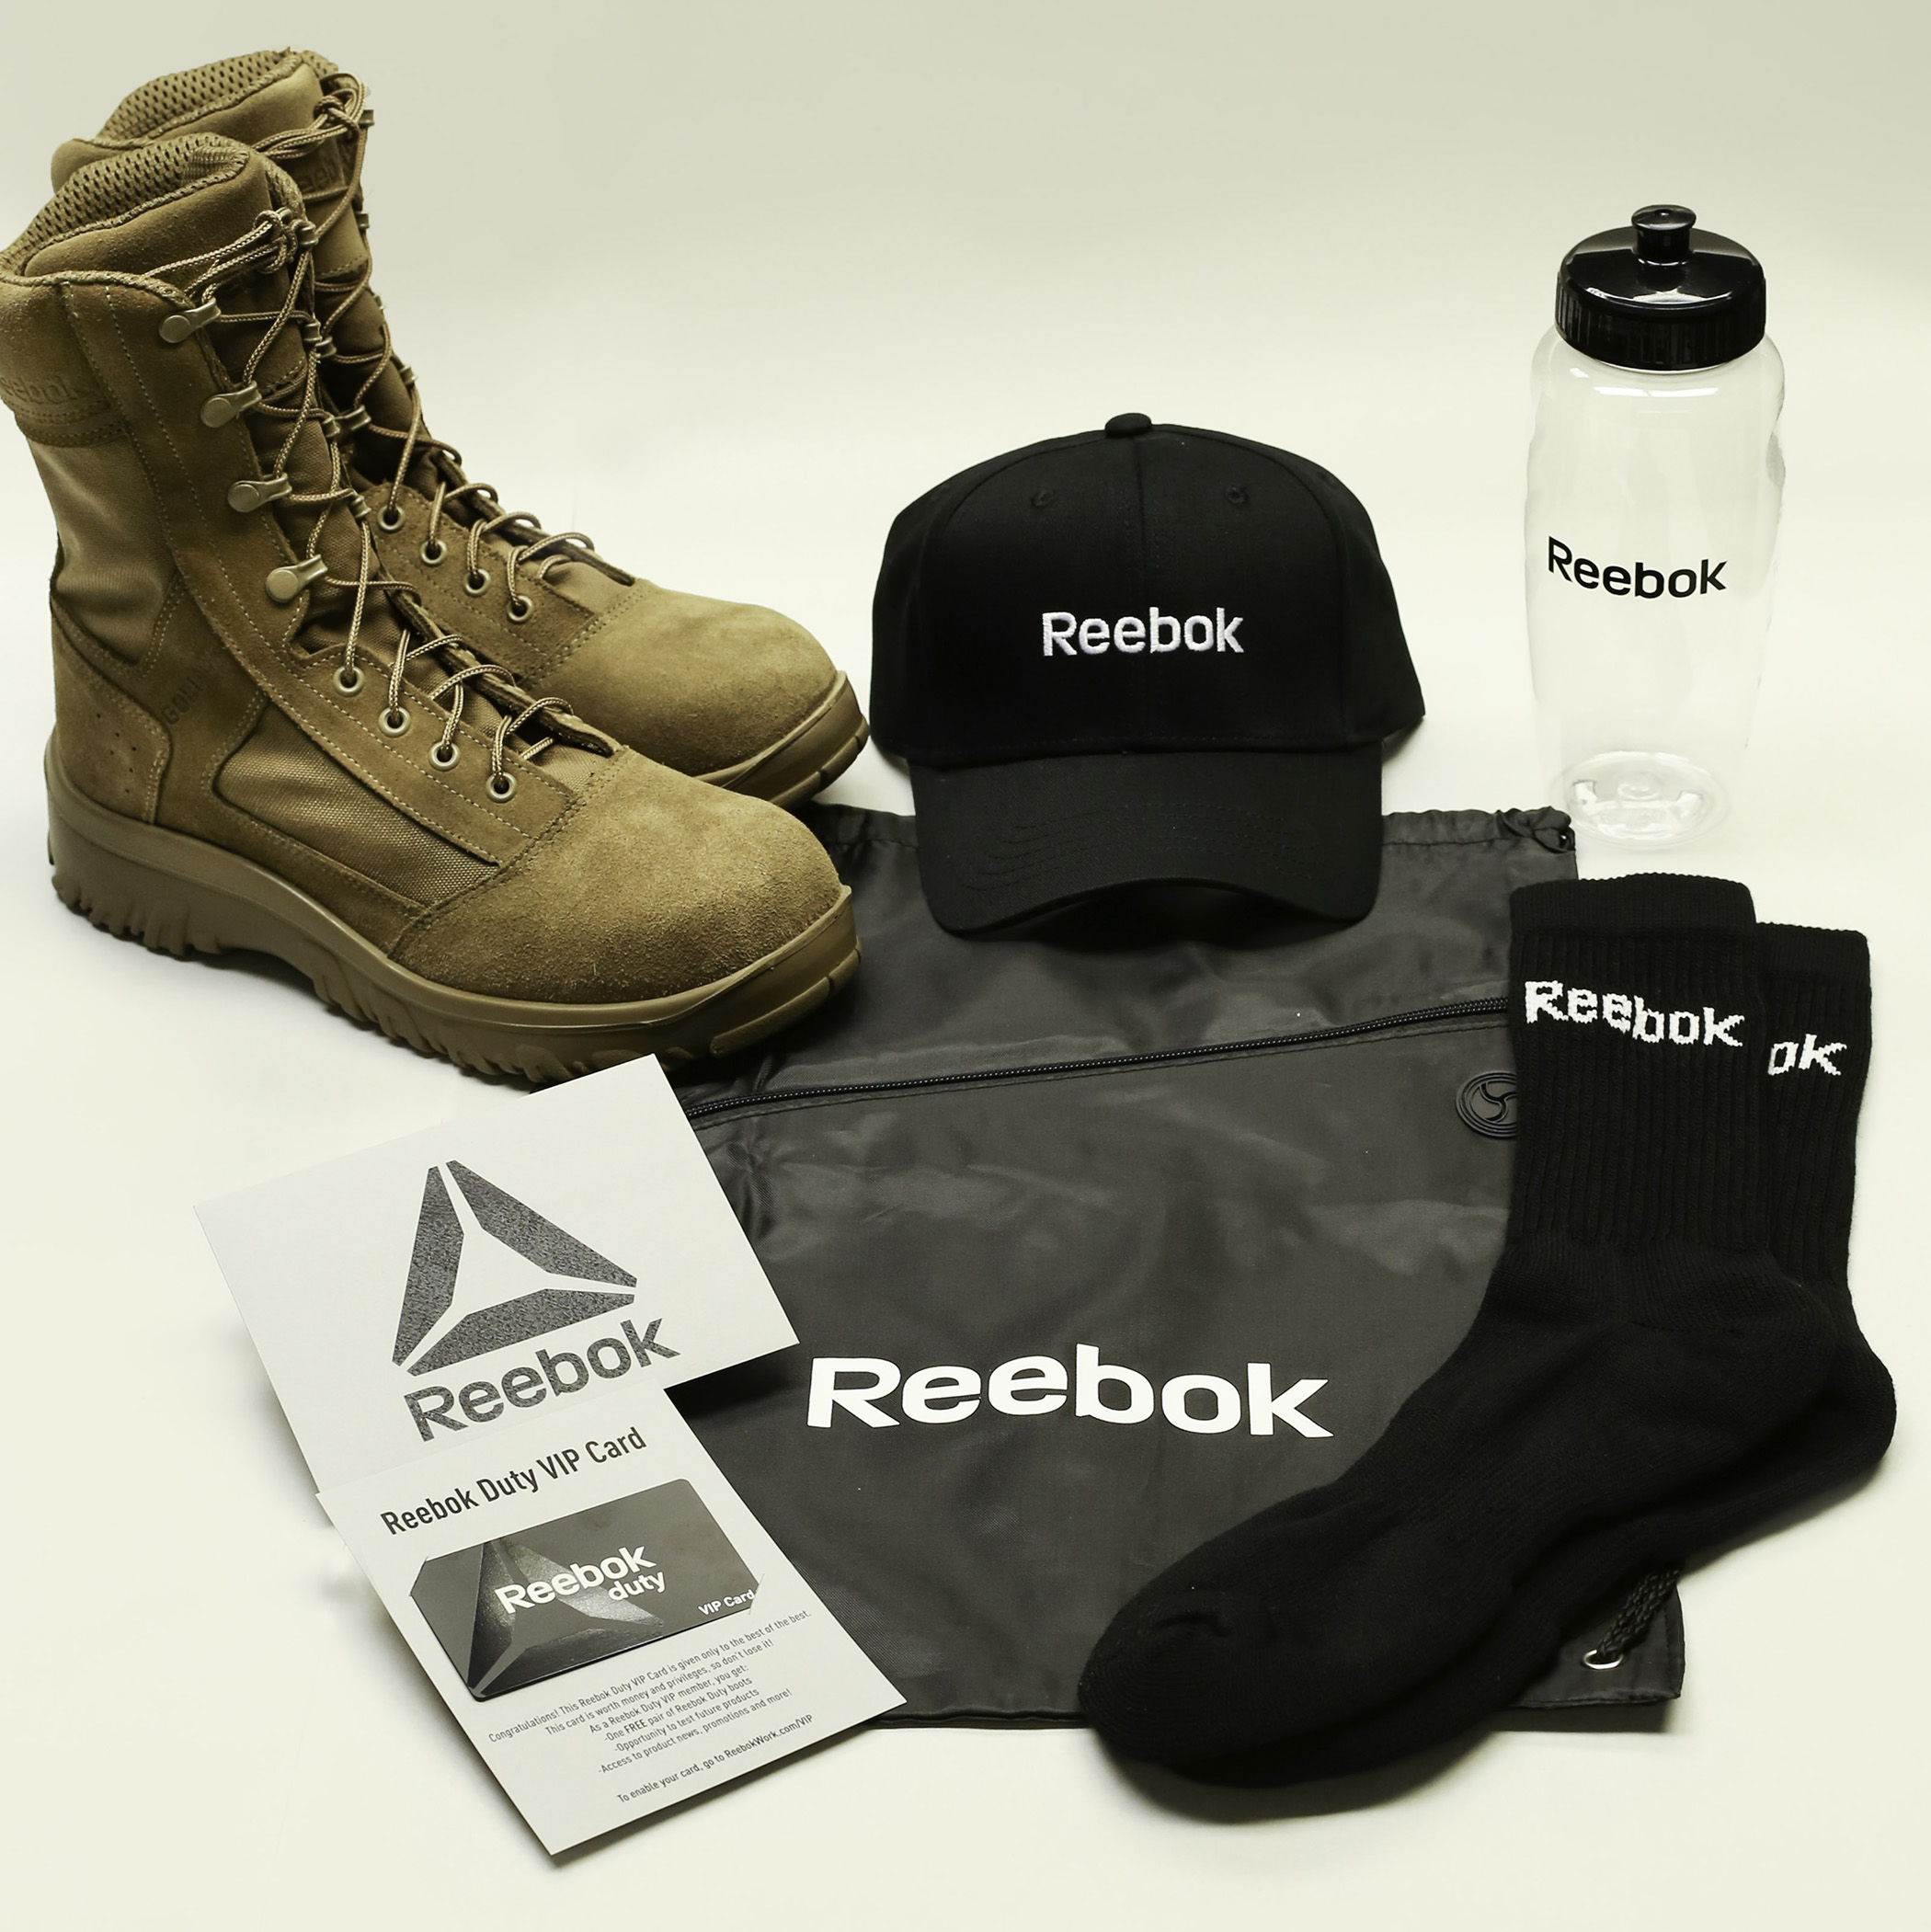 Reebok Provides High Performance Military Footwear to All